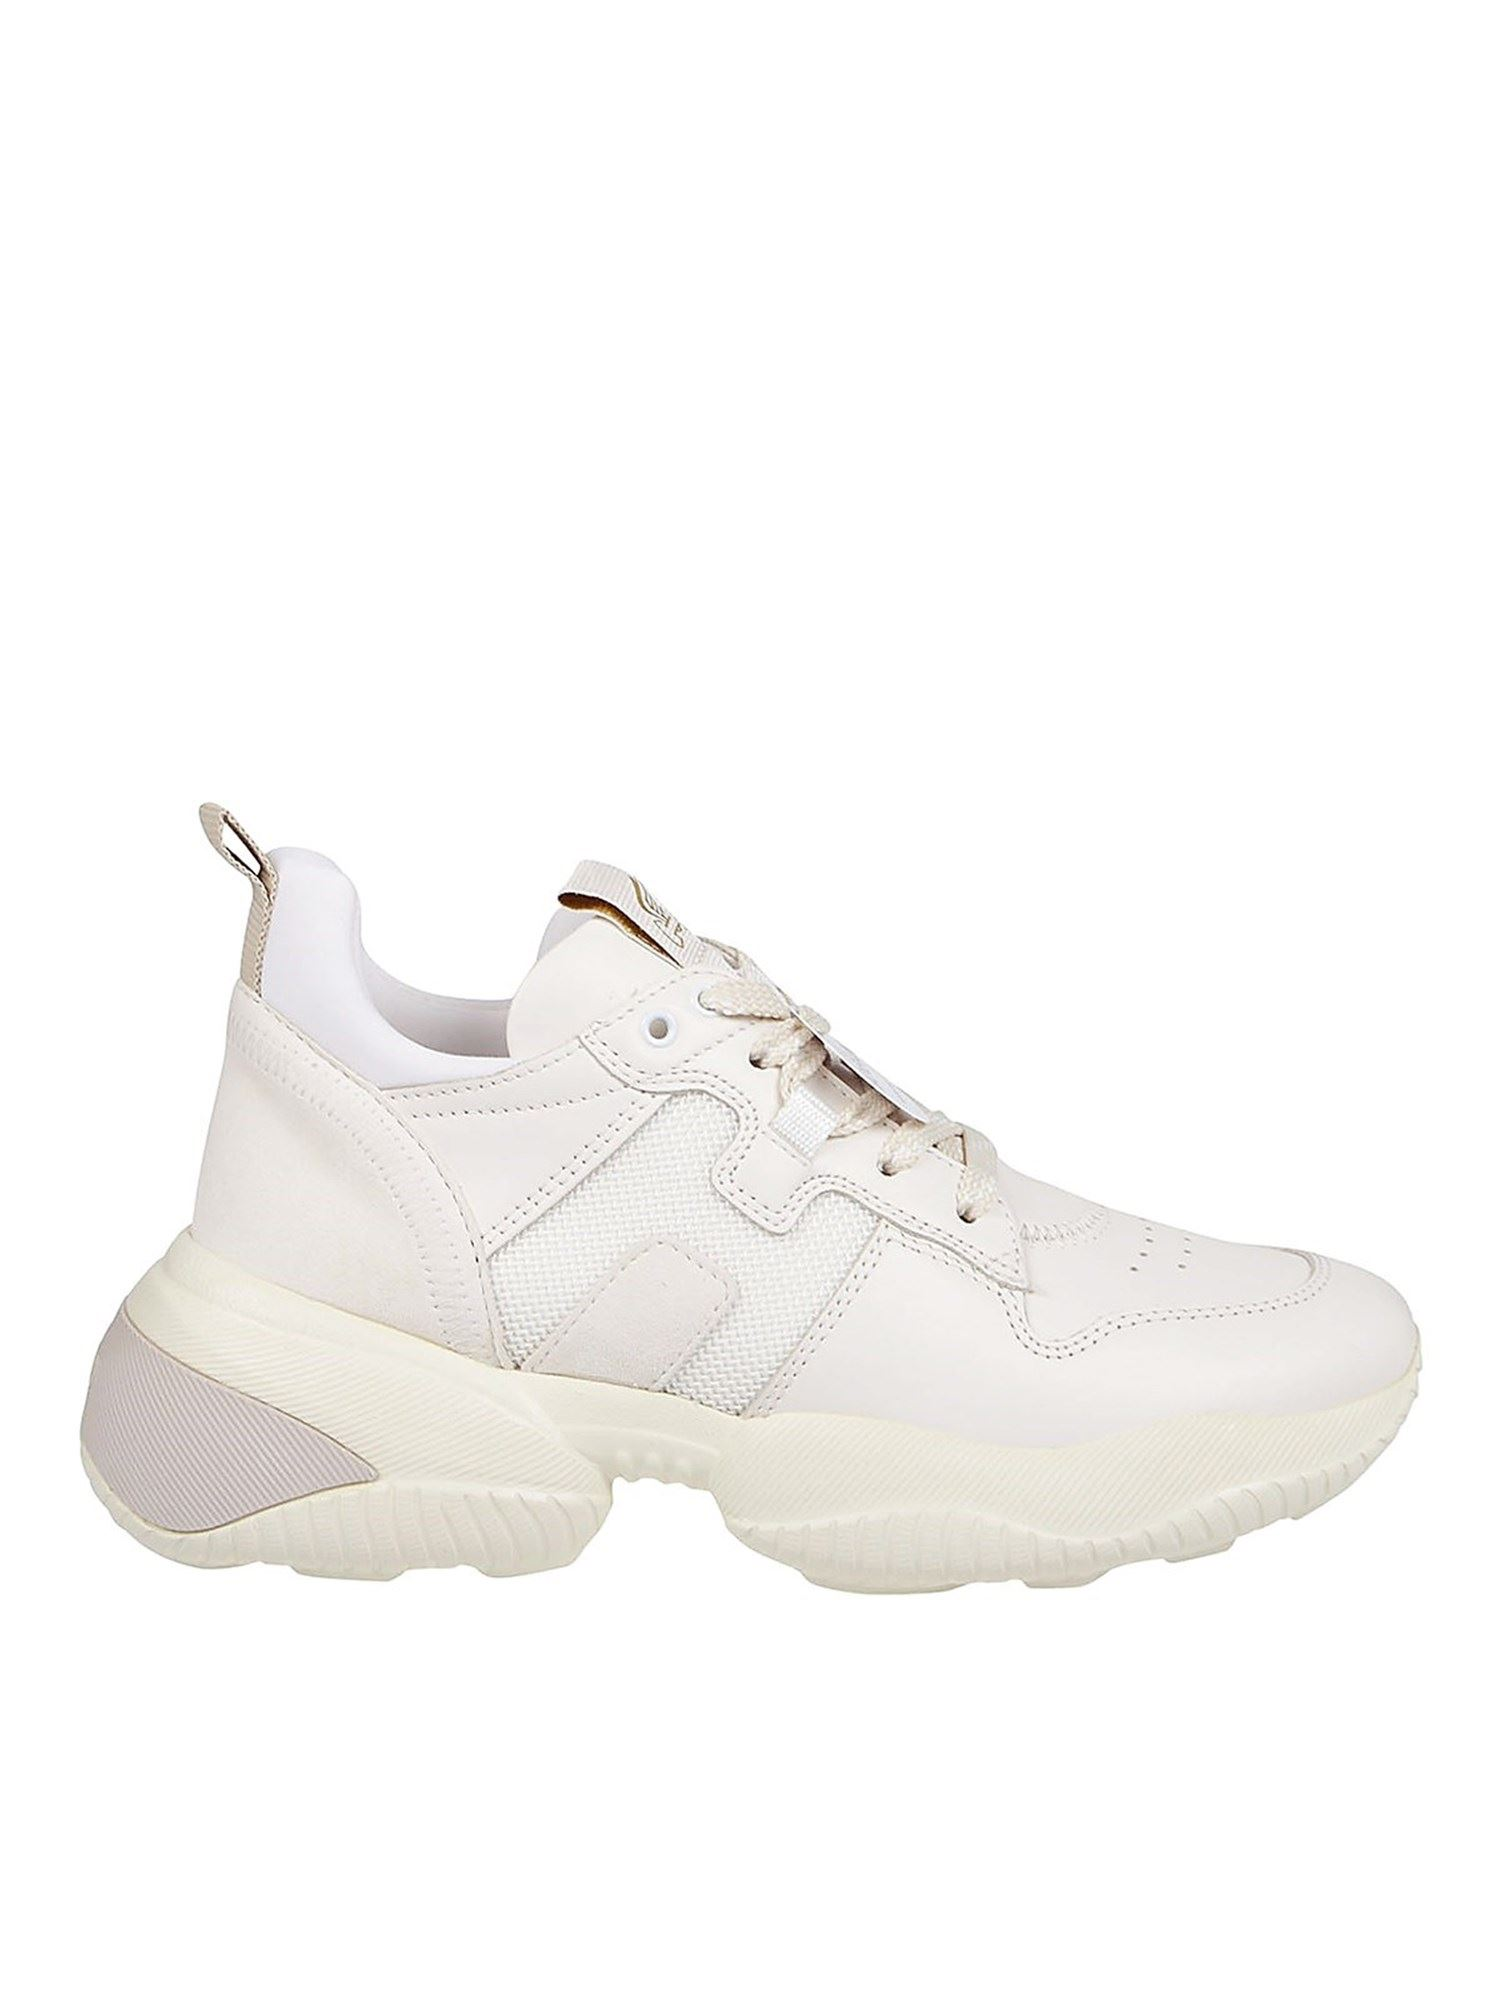 Hogan Leathers INTERACTION SNEAKERS